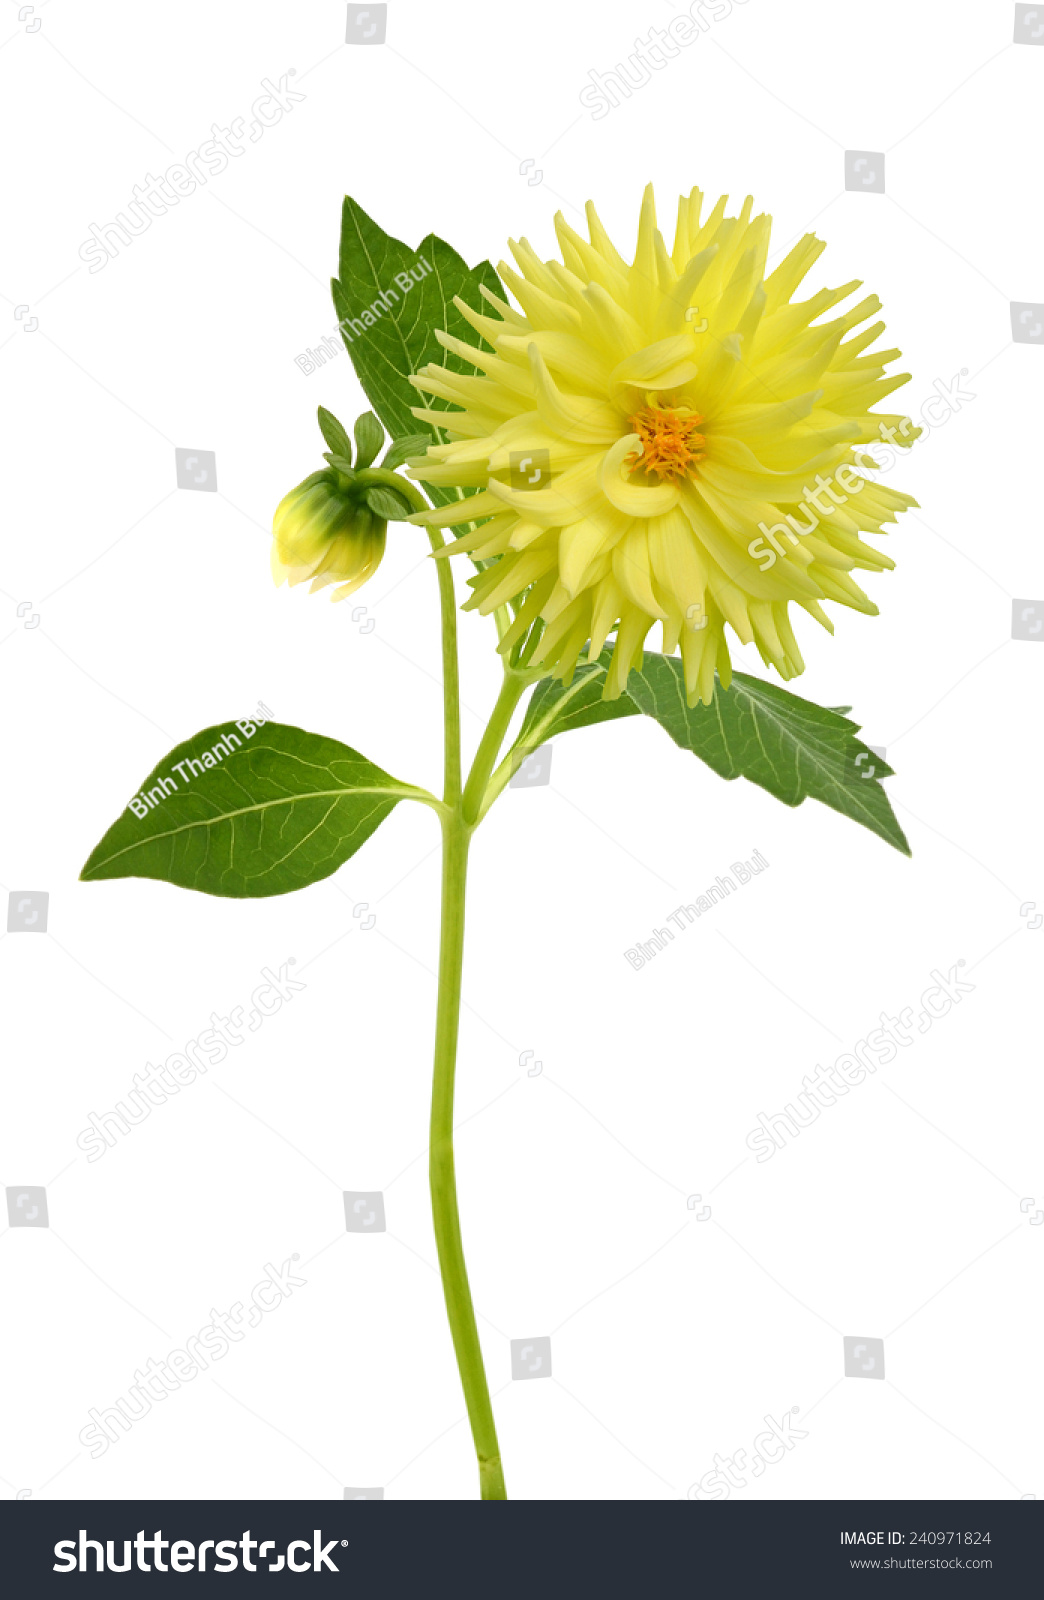 Yellow dahlia flower buds leaves on stock photo edit now 240971824 yellow dahlia flower with buds and leaves on the white background izmirmasajfo